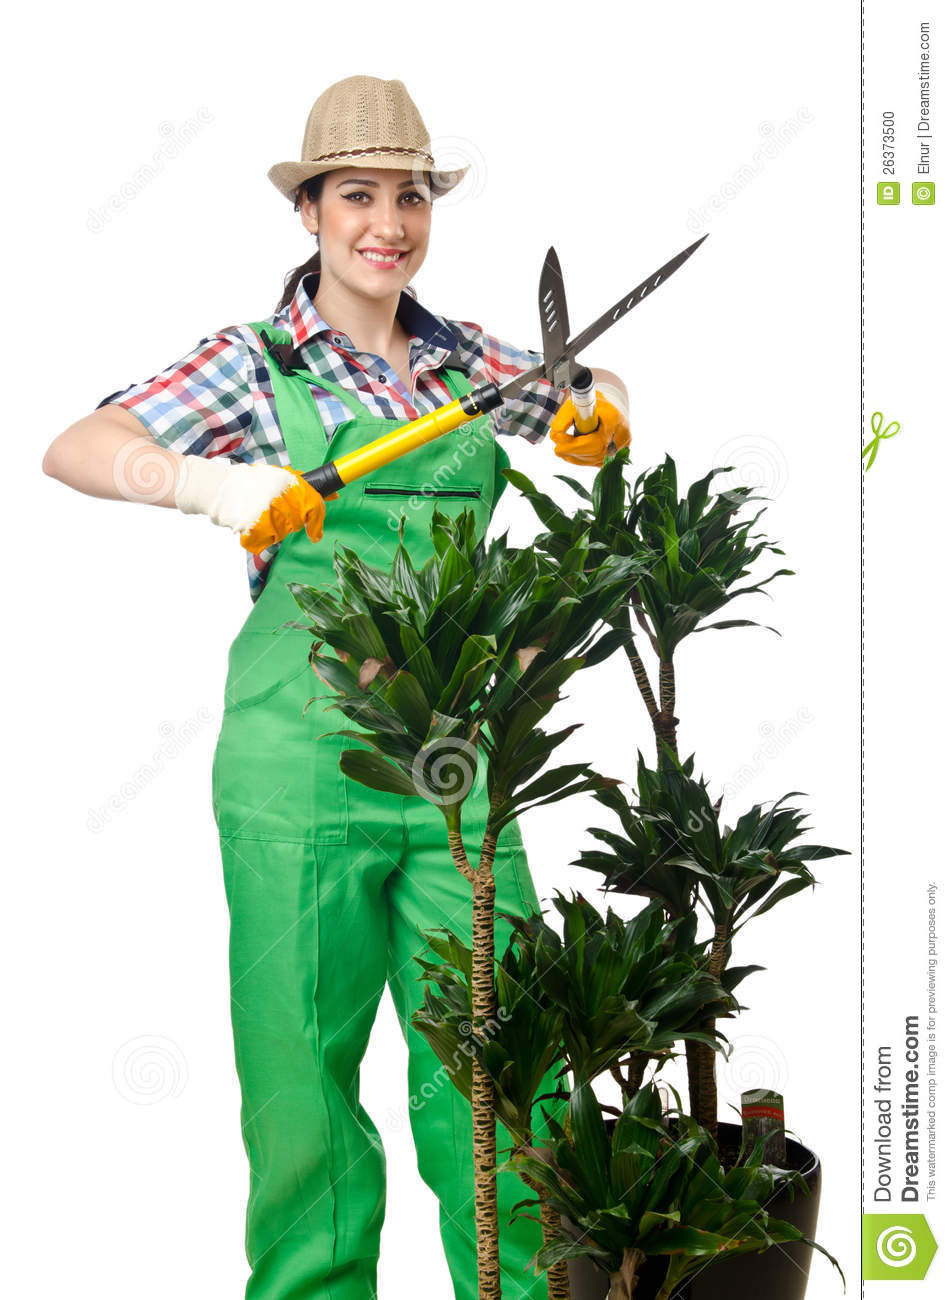 Woman Gardener Trimming Plans Stock Photo Image 26373500